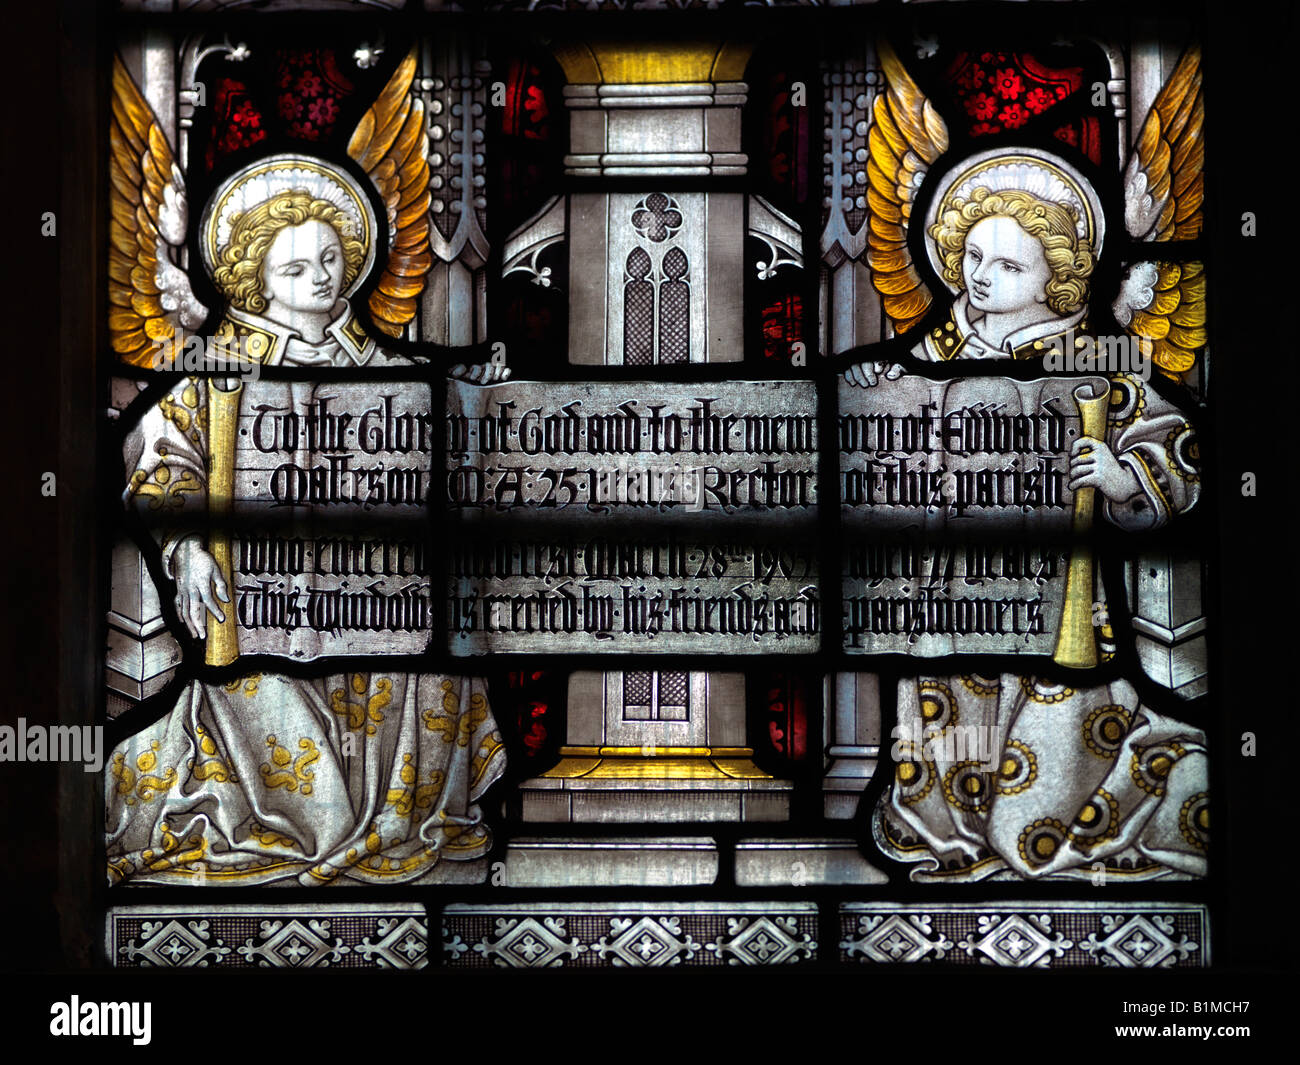 Stained Glass Window of Two Angels Holding a Memorial to a Past Rector Saint Nicholas Church Great Bookham Surrey - Stock Image